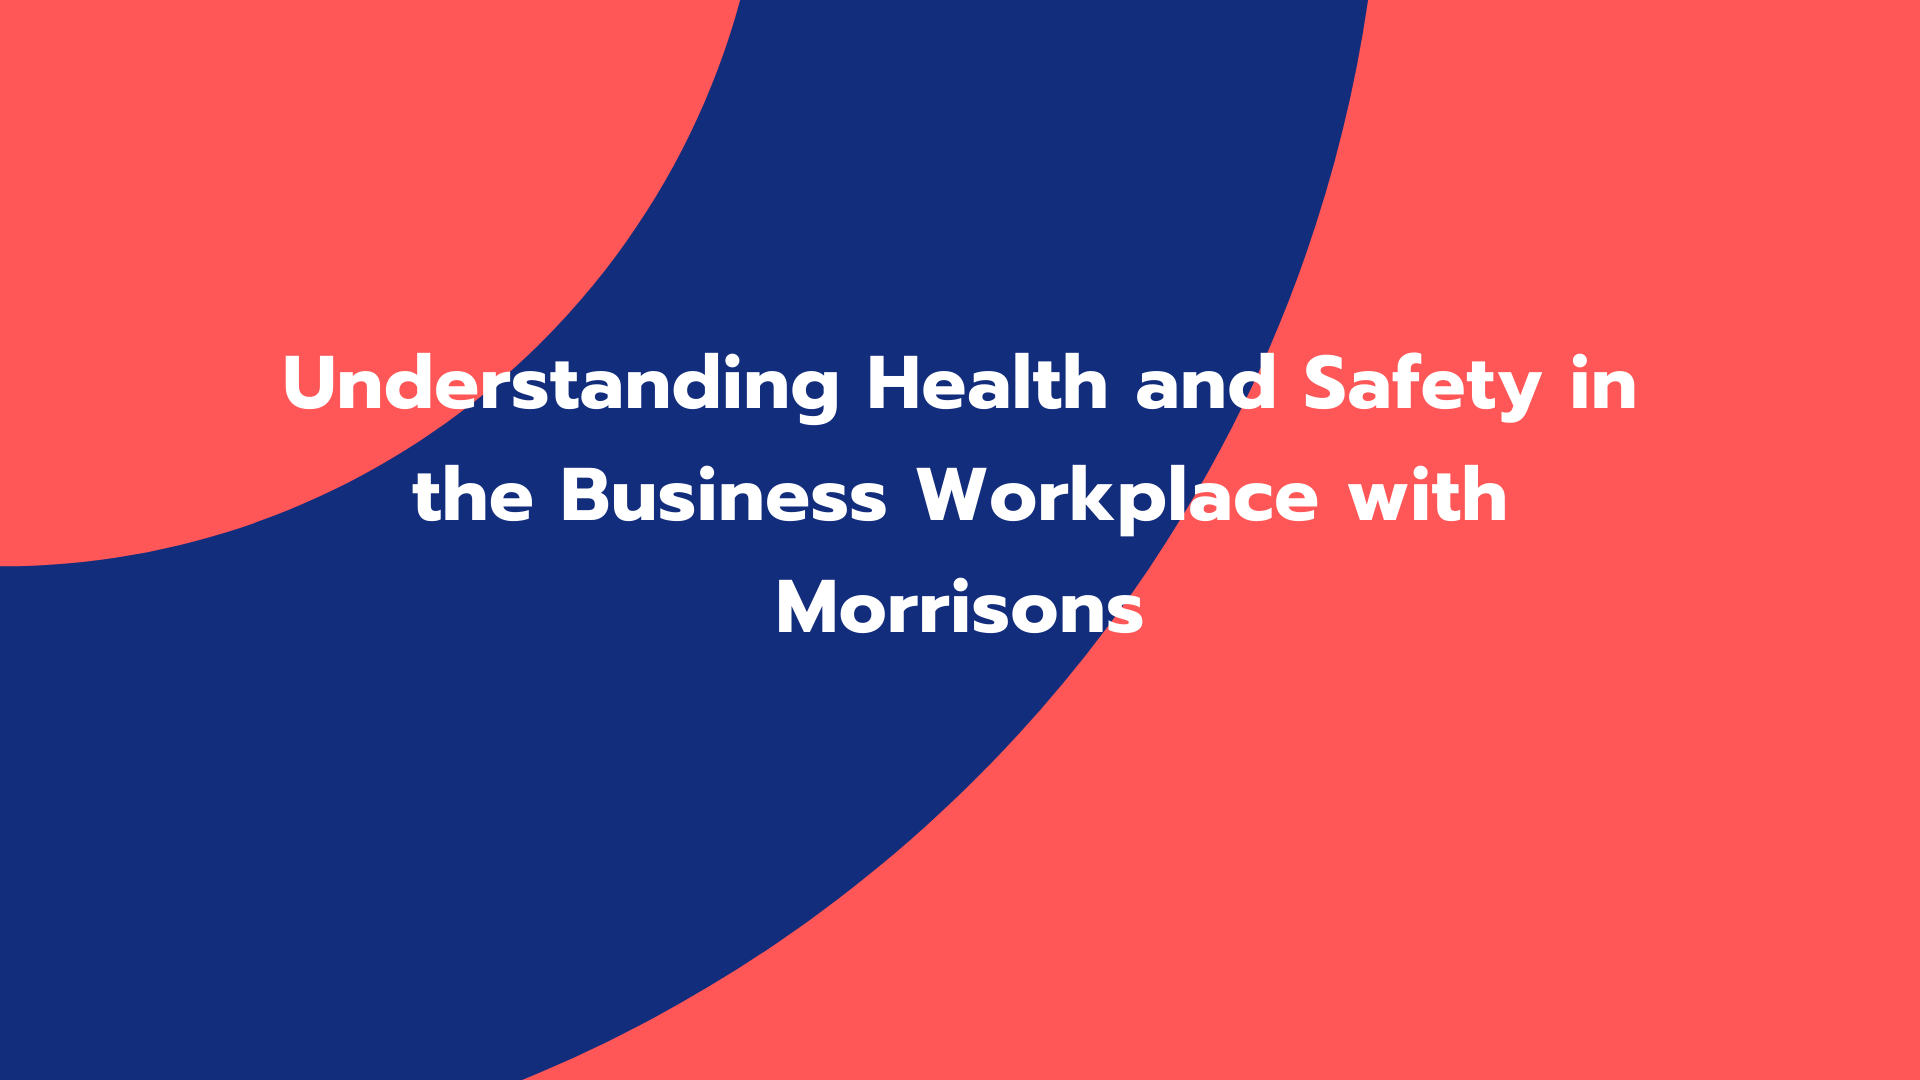 Understanding Health and Safety in the Business Workplace with Morrisons